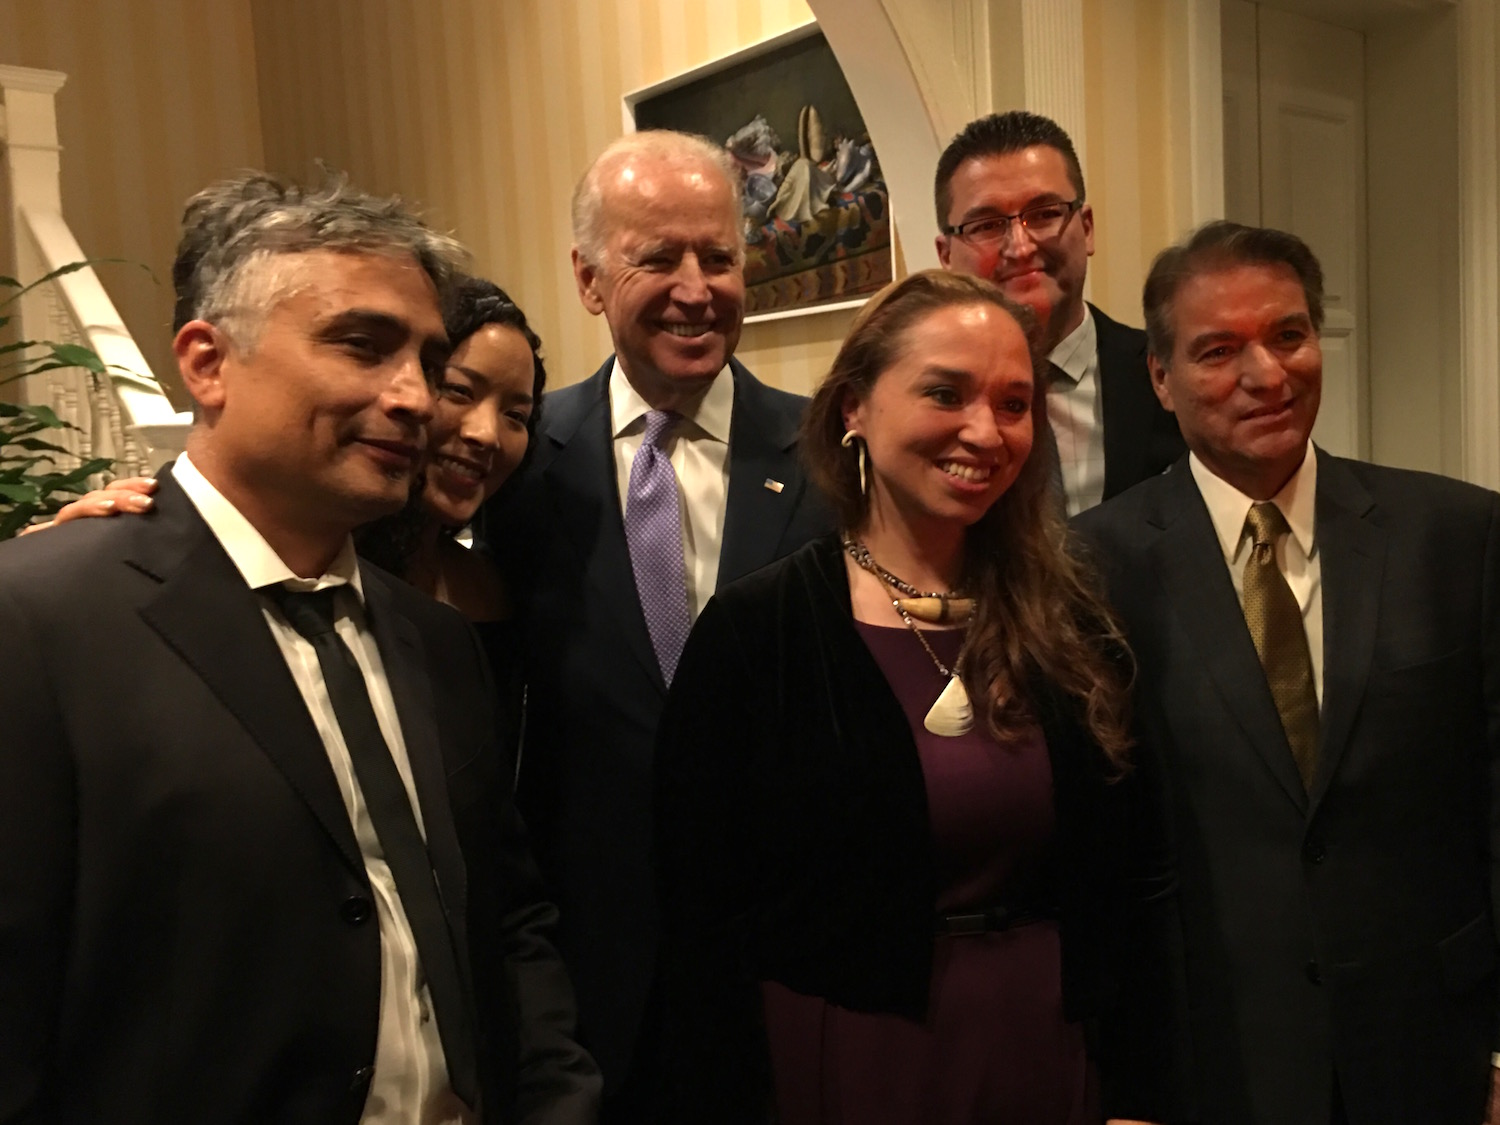 Vice President Joe Biden reflects on triumphs of Obama's Indian policies